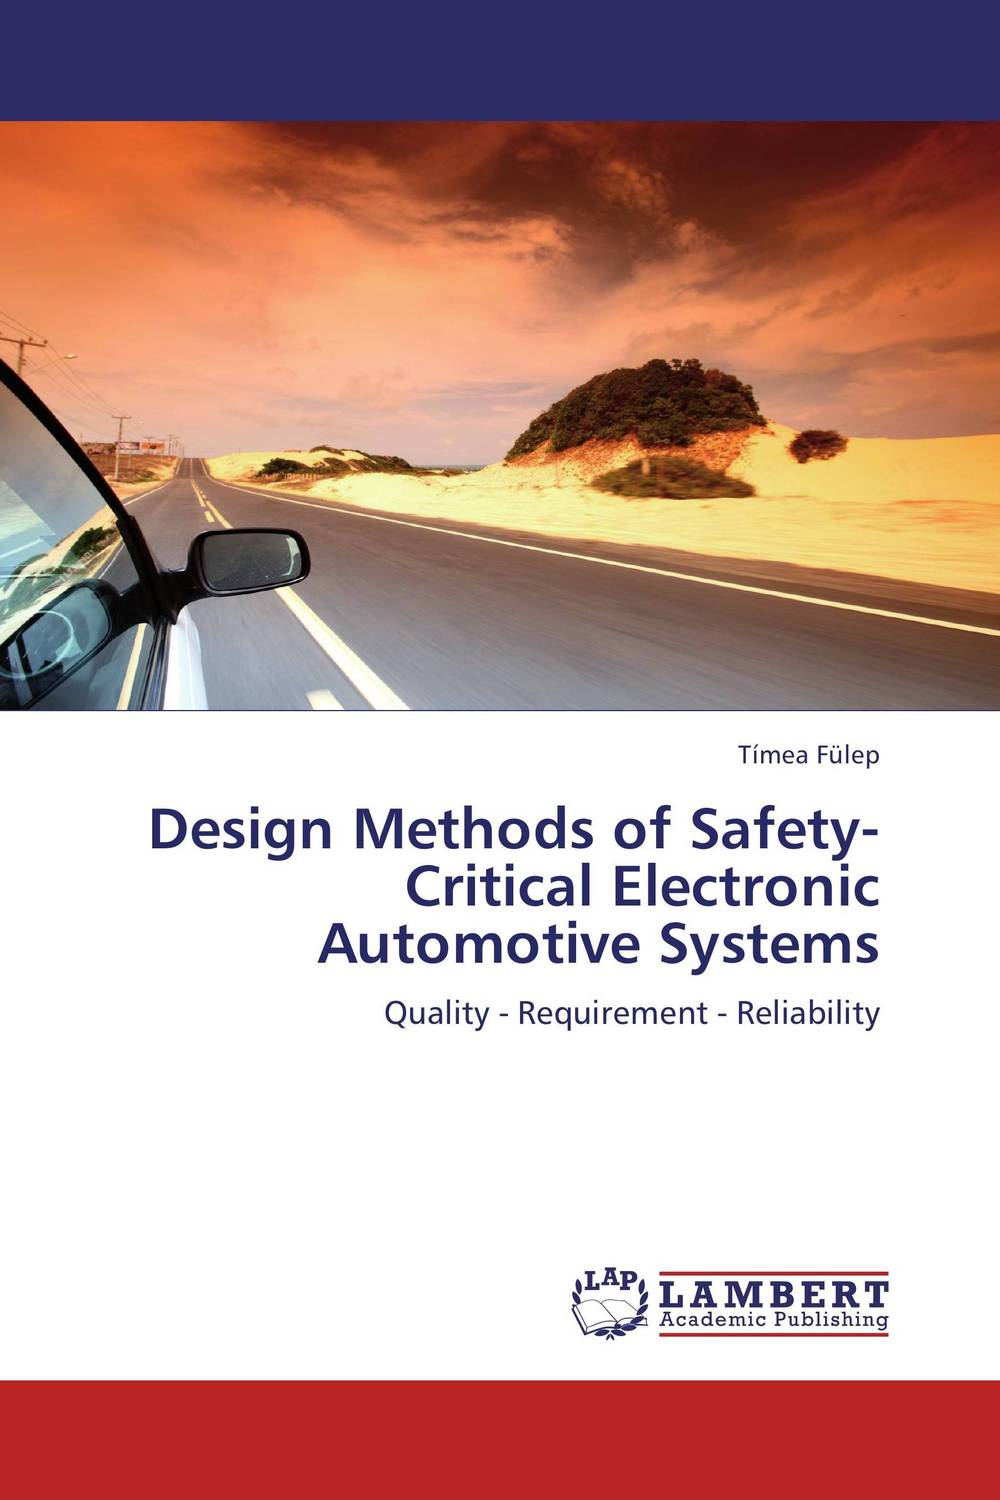 Design Methods of Safety-Critical Electronic Automotive Systems belousov a security features of banknotes and other documents methods of authentication manual денежные билеты бланки ценных бумаг и документов